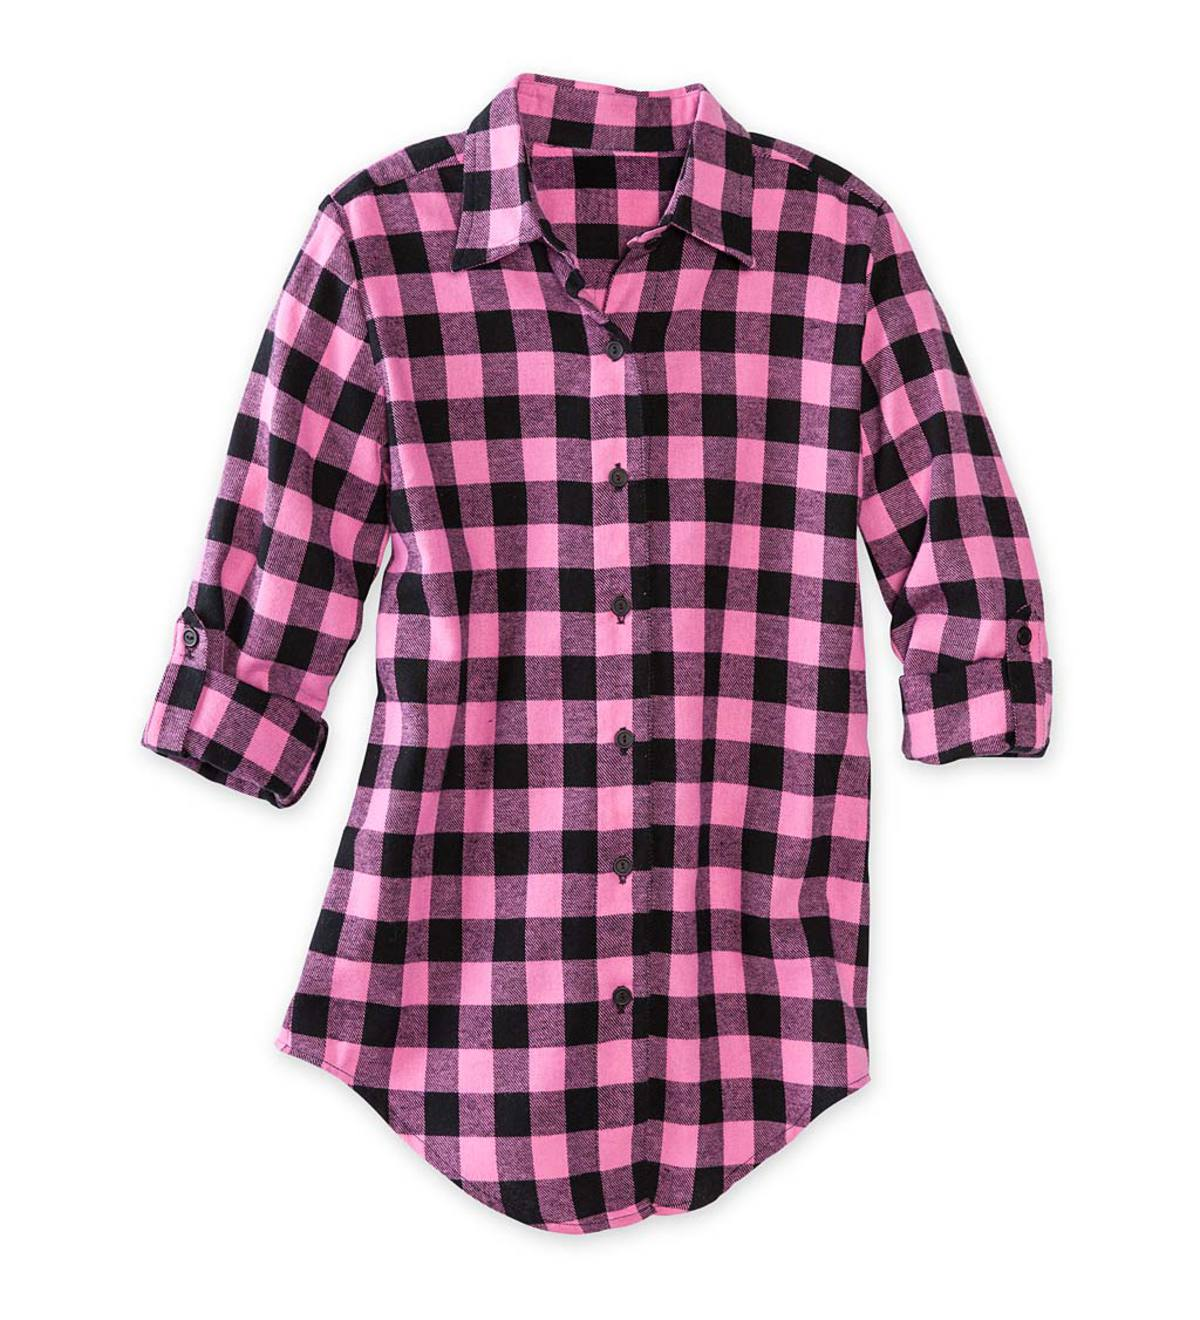 Long-Sleeve Plaid Button-Down Shirt Tunic - PK - 10